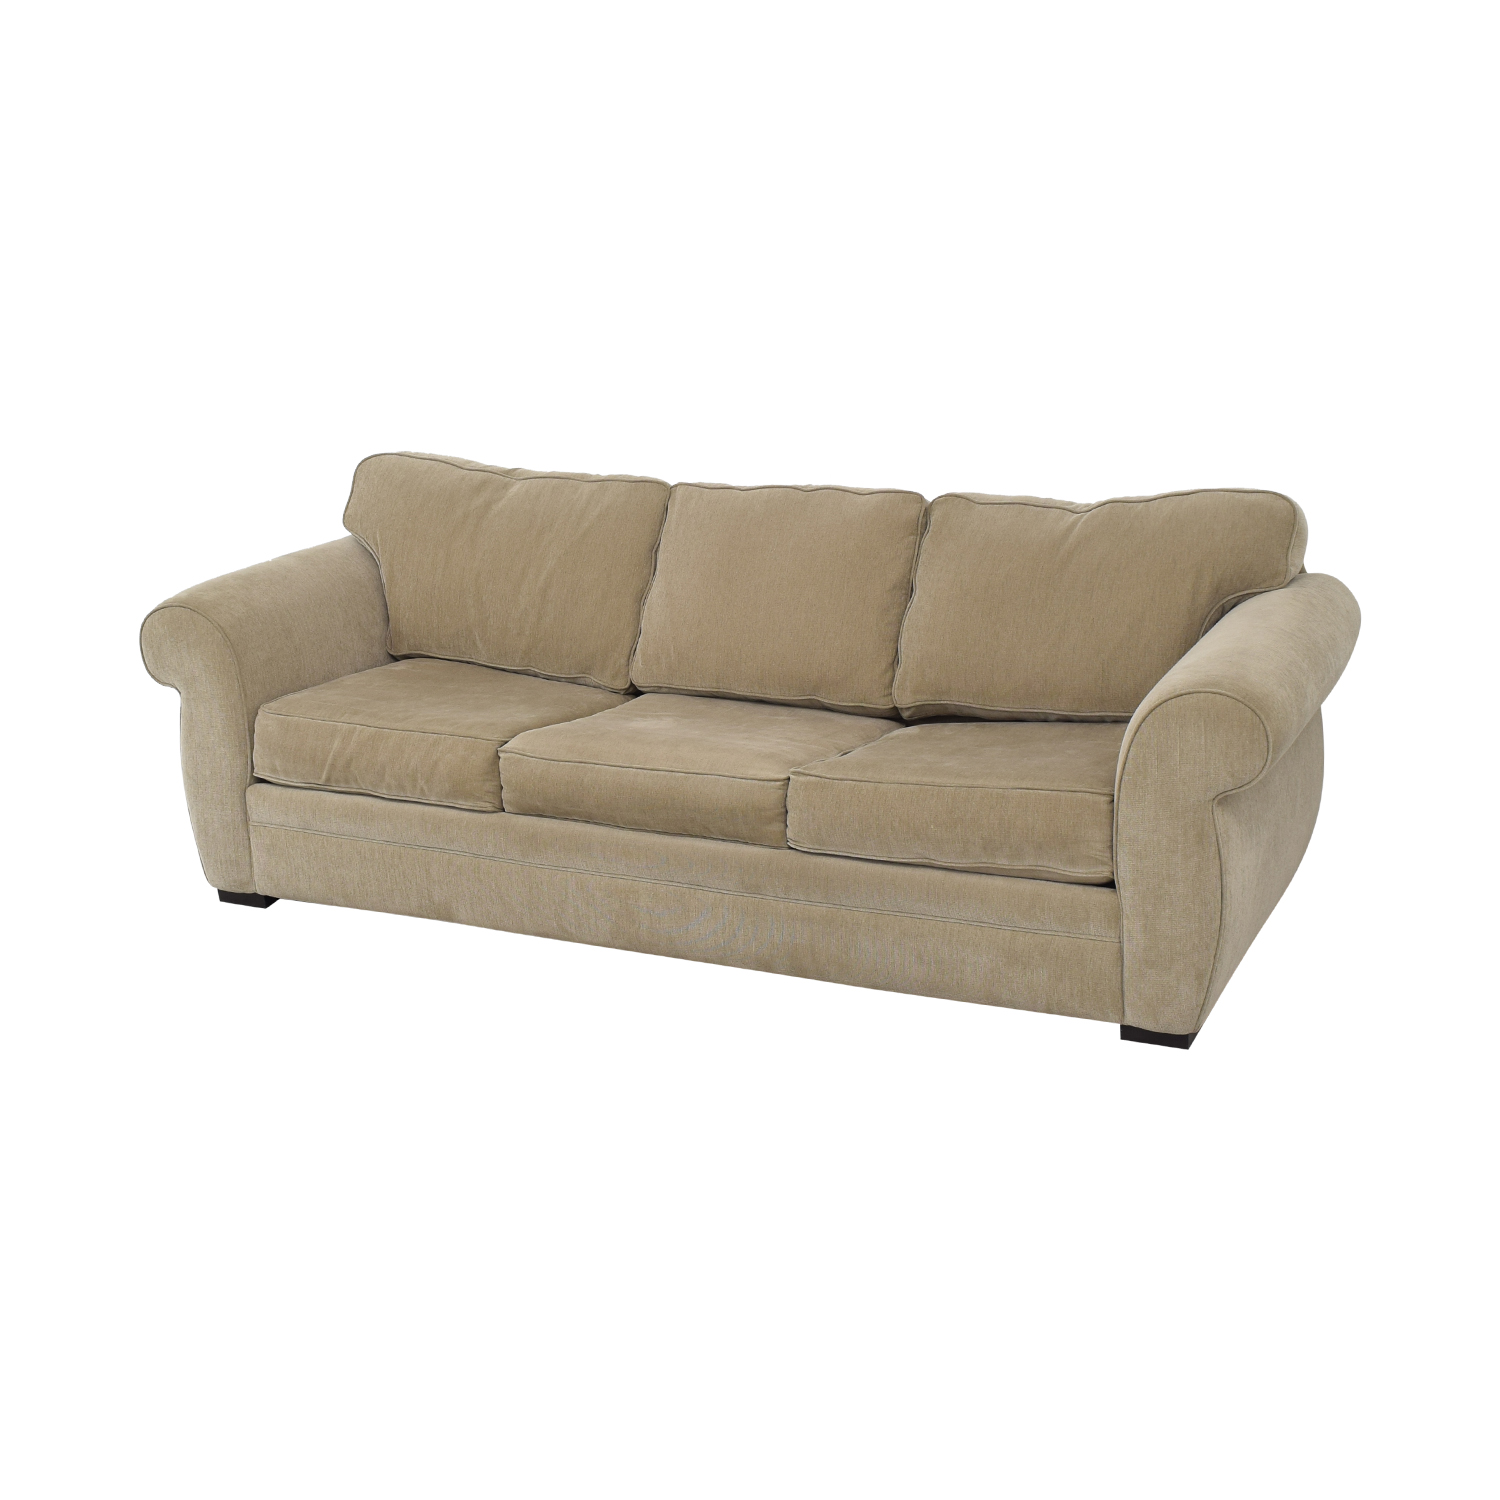 Macy's Queen Sleeper Sofa / Sofa Beds